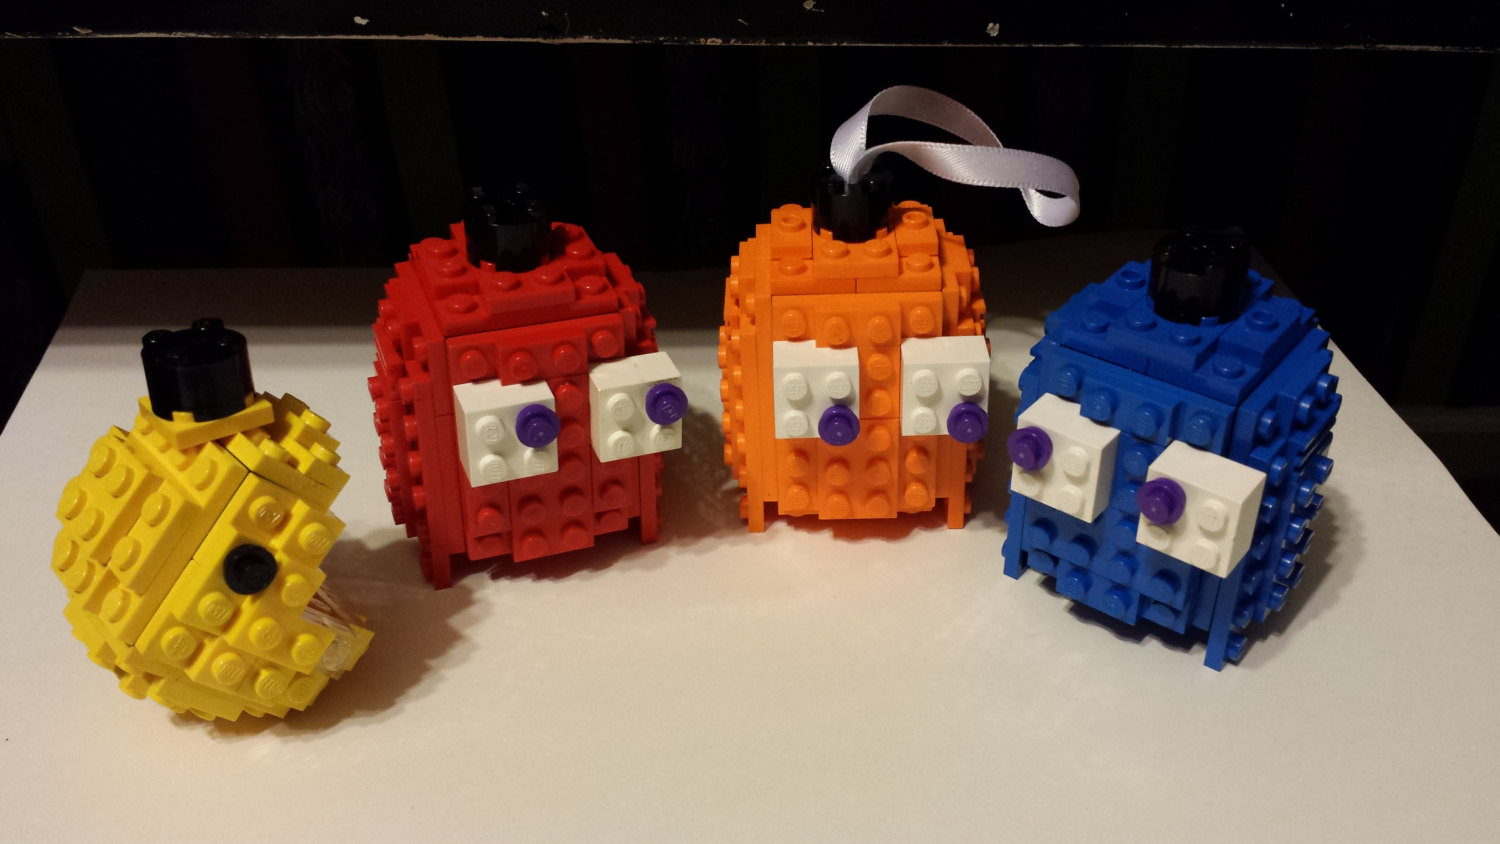 3D Building Block Pacman amd Ghosts Christmas Ornament Set